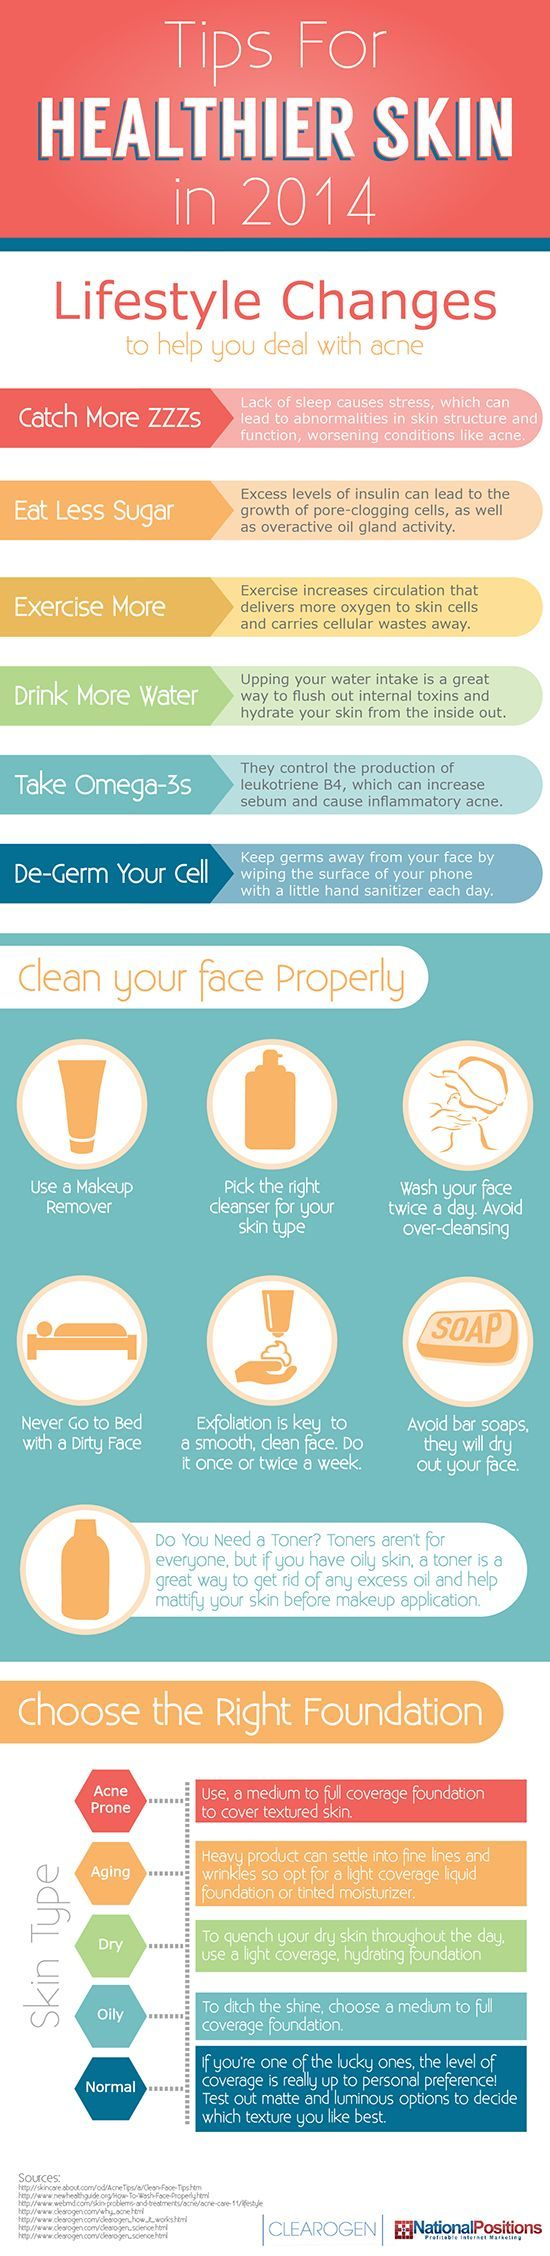 Visualistan: Tips For Healthier Skin In 2014 [Infographic]